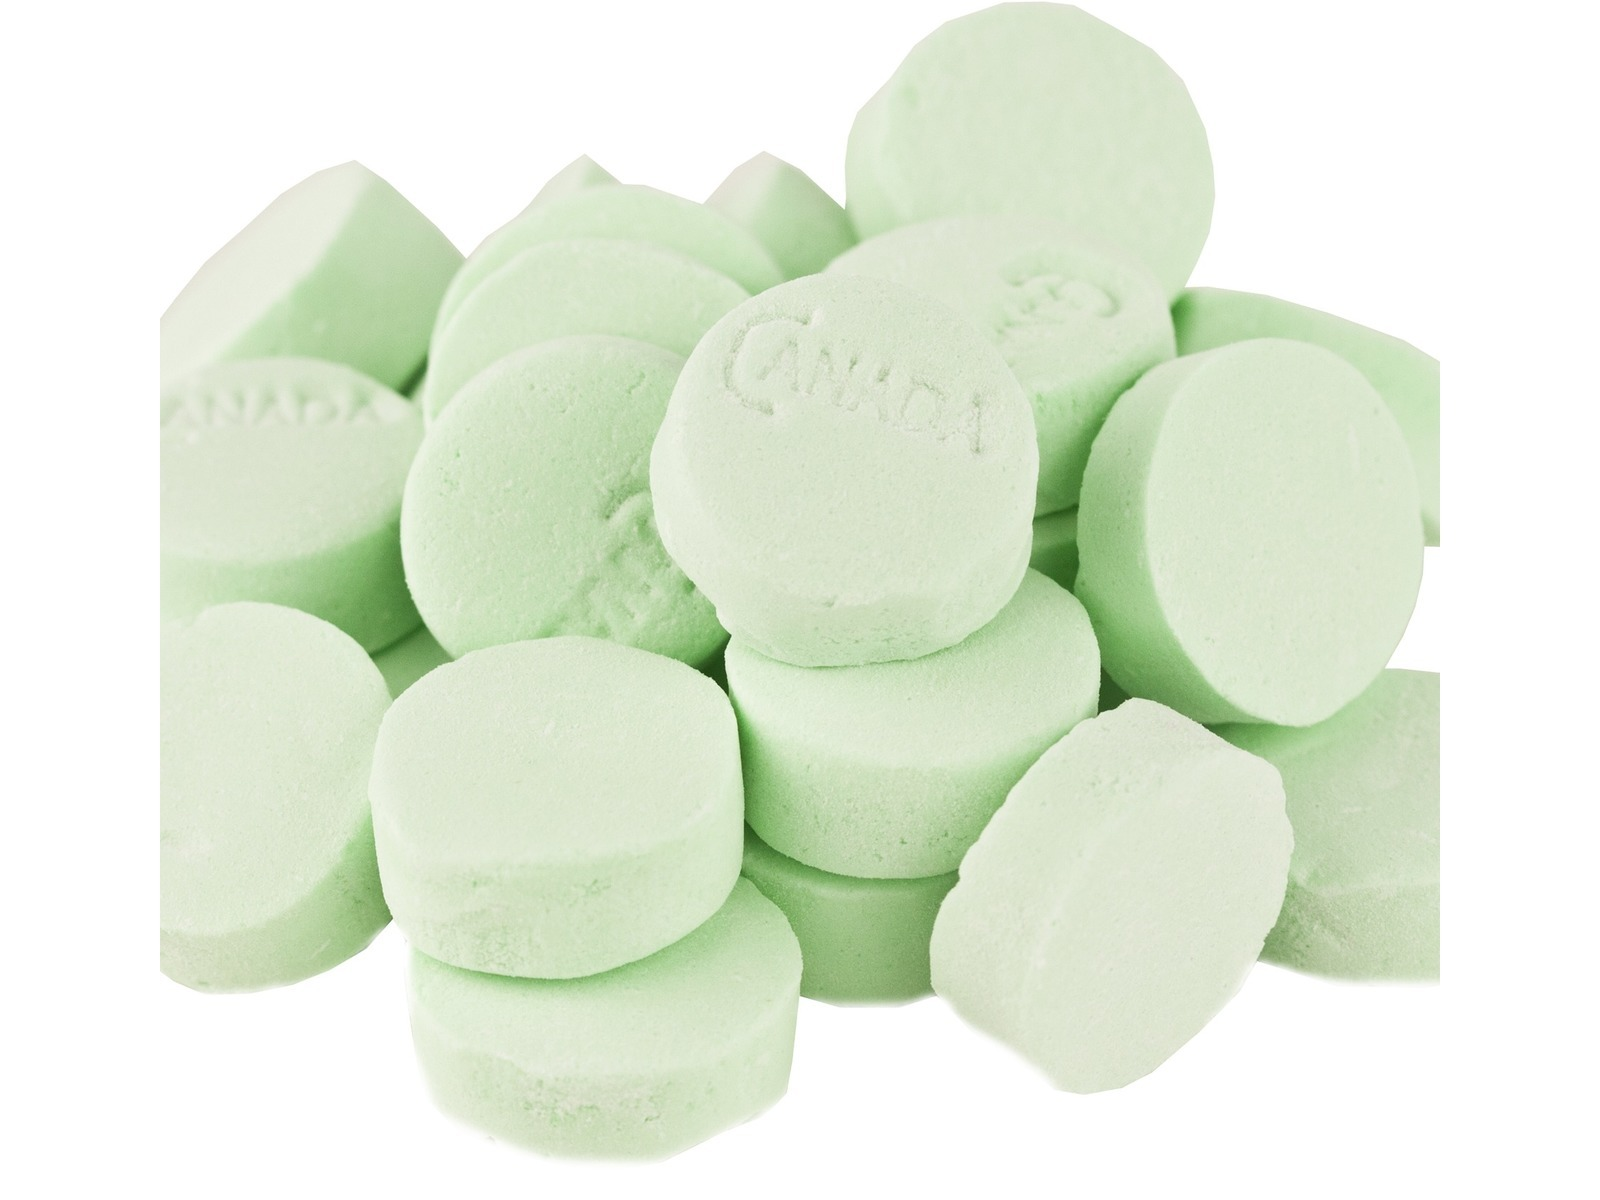 Green Spearmint Lozengers Mints Canada Mints Lozenges 2 pounds by New England Confectionary Company (NECCO)